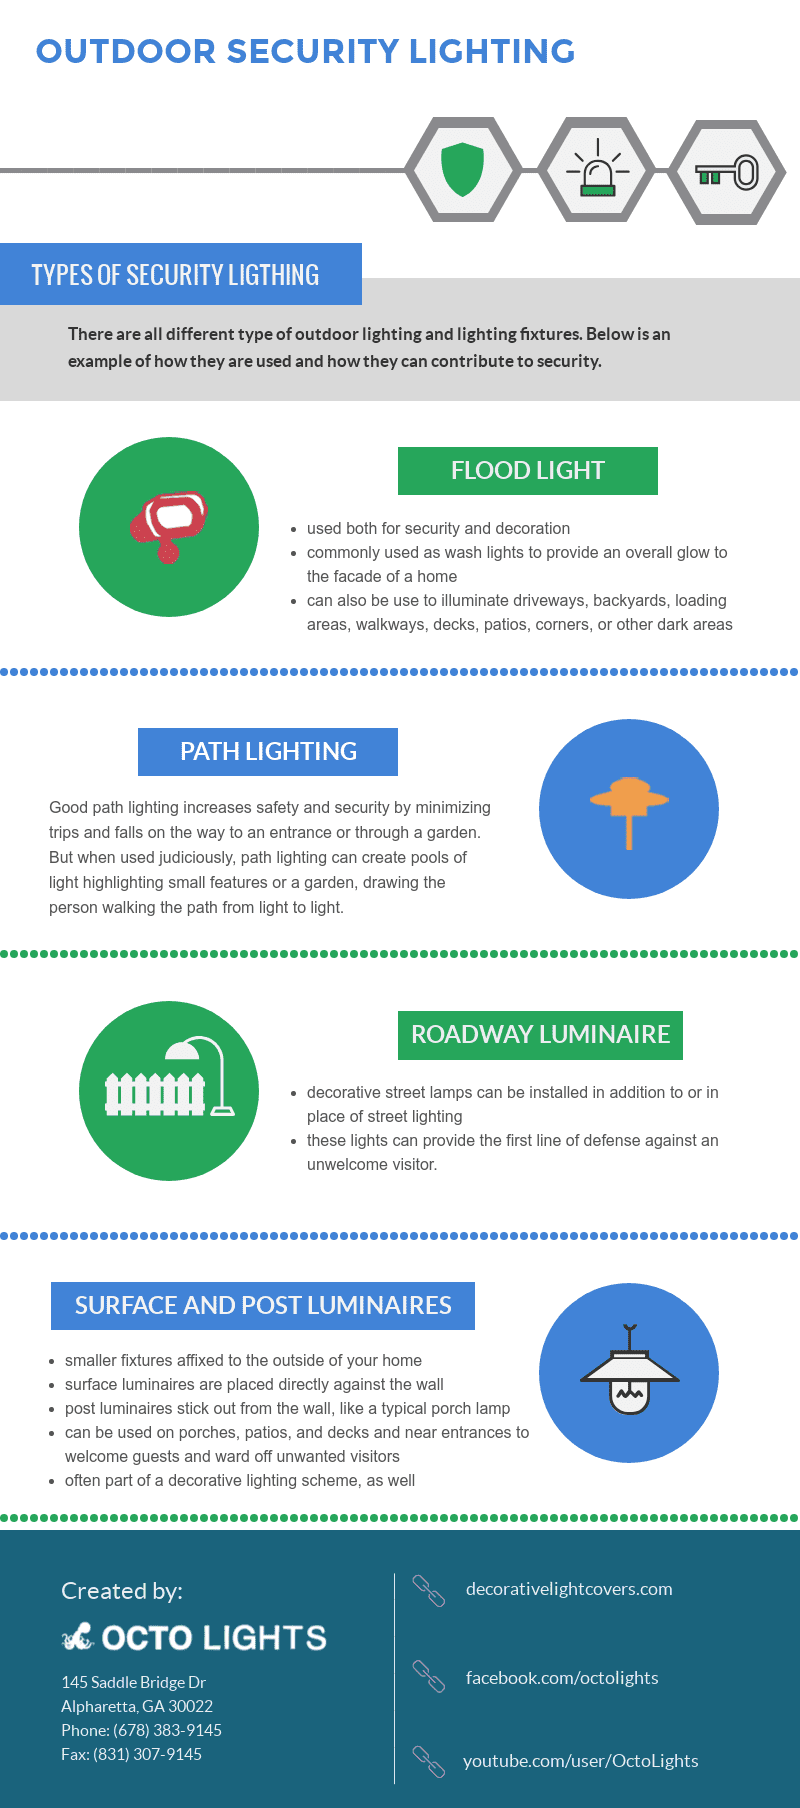 Outdoor Security Lighting [infographic]